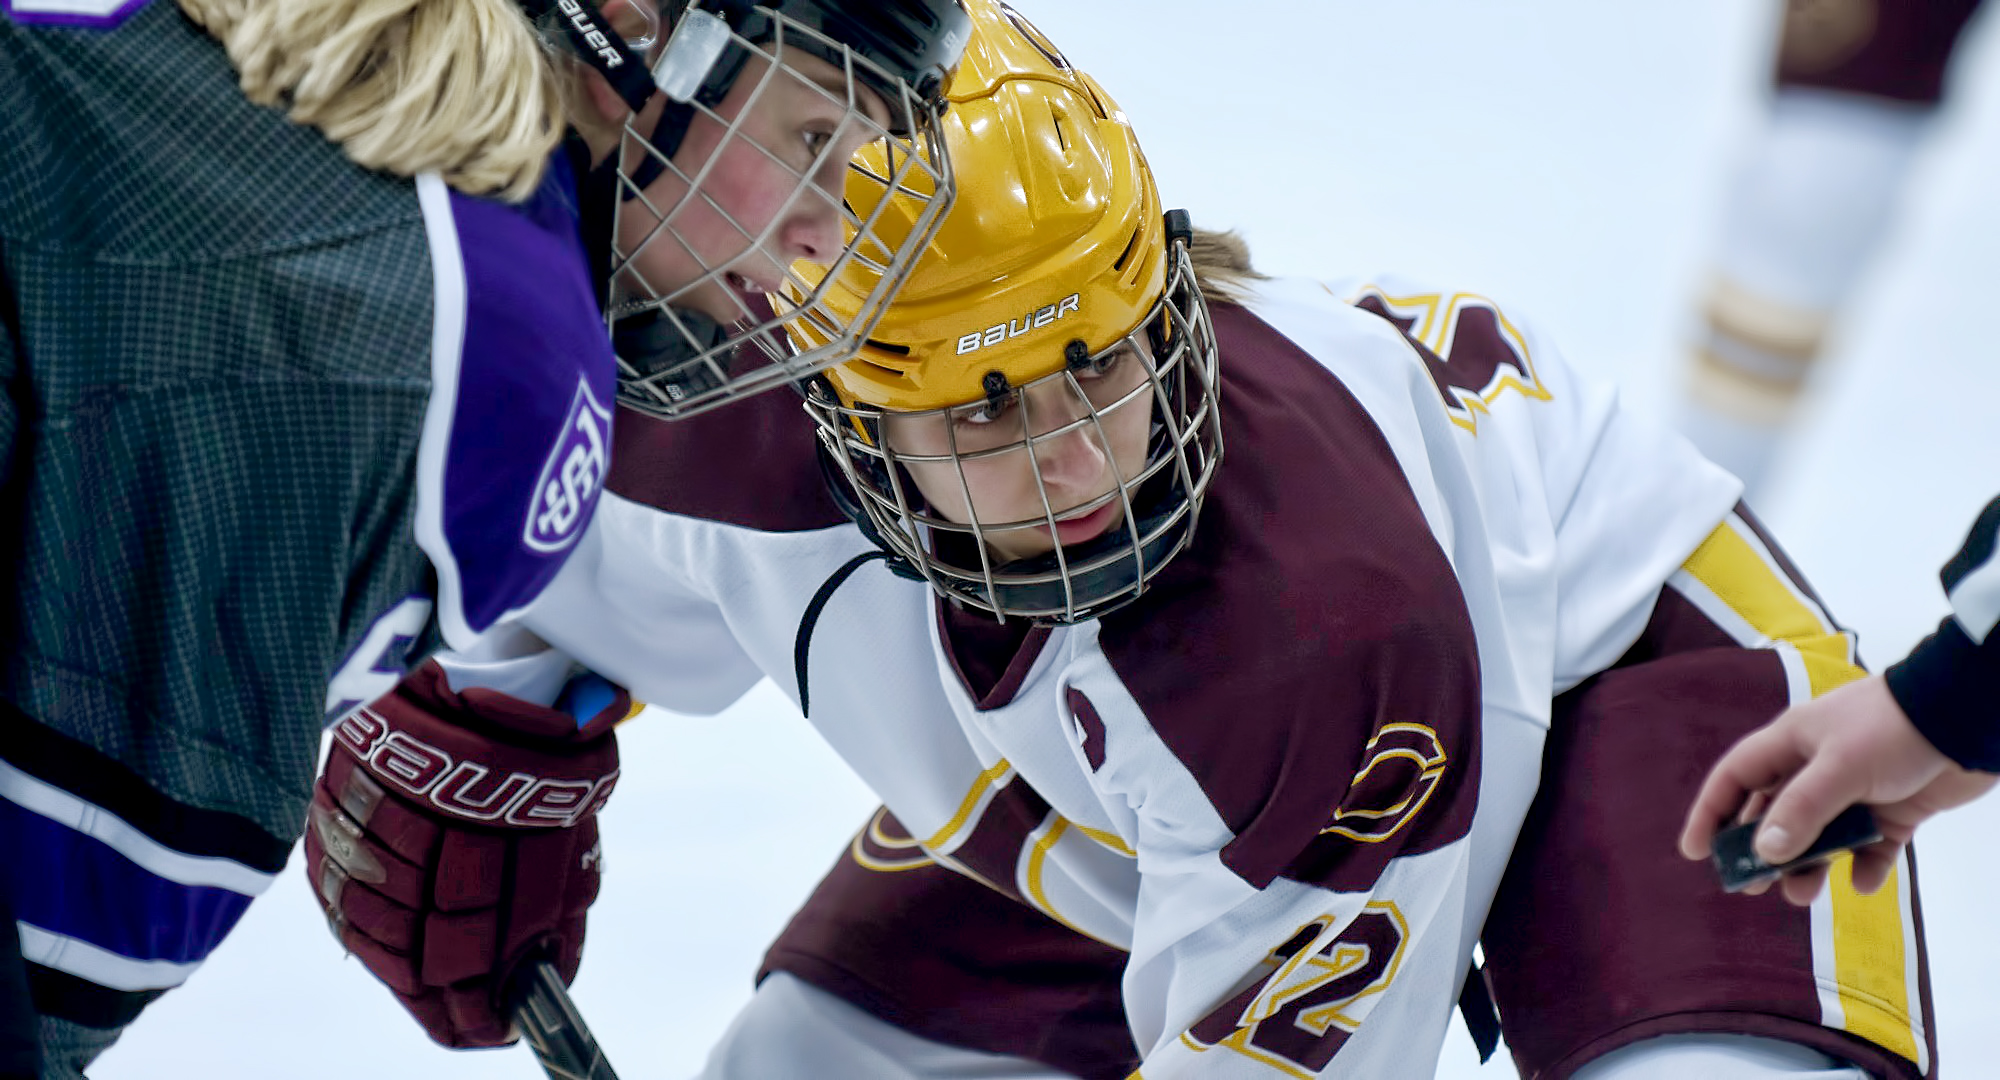 Senior Megan Dondelinger eyes the puck before a faceoff. She scored the only goal of the game in the Cobbers' 1-1 OT tie with #2 St. Thomas.